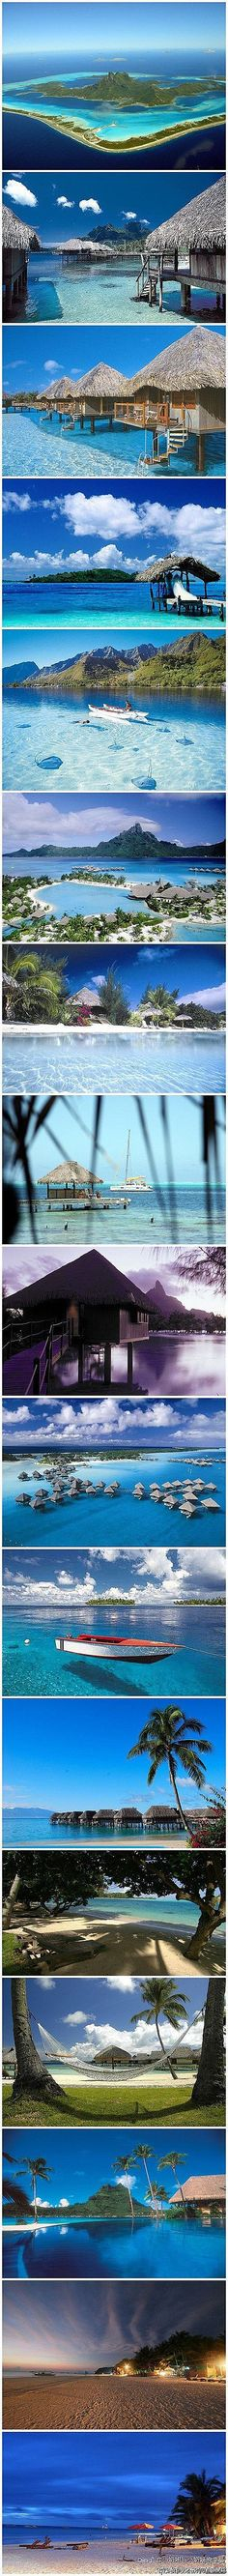 Tahiti's, Bora Bora Didn't go on a honeymoon but did go for our anniversary! Only heaven could be as beautiful! #travel #BoraBora